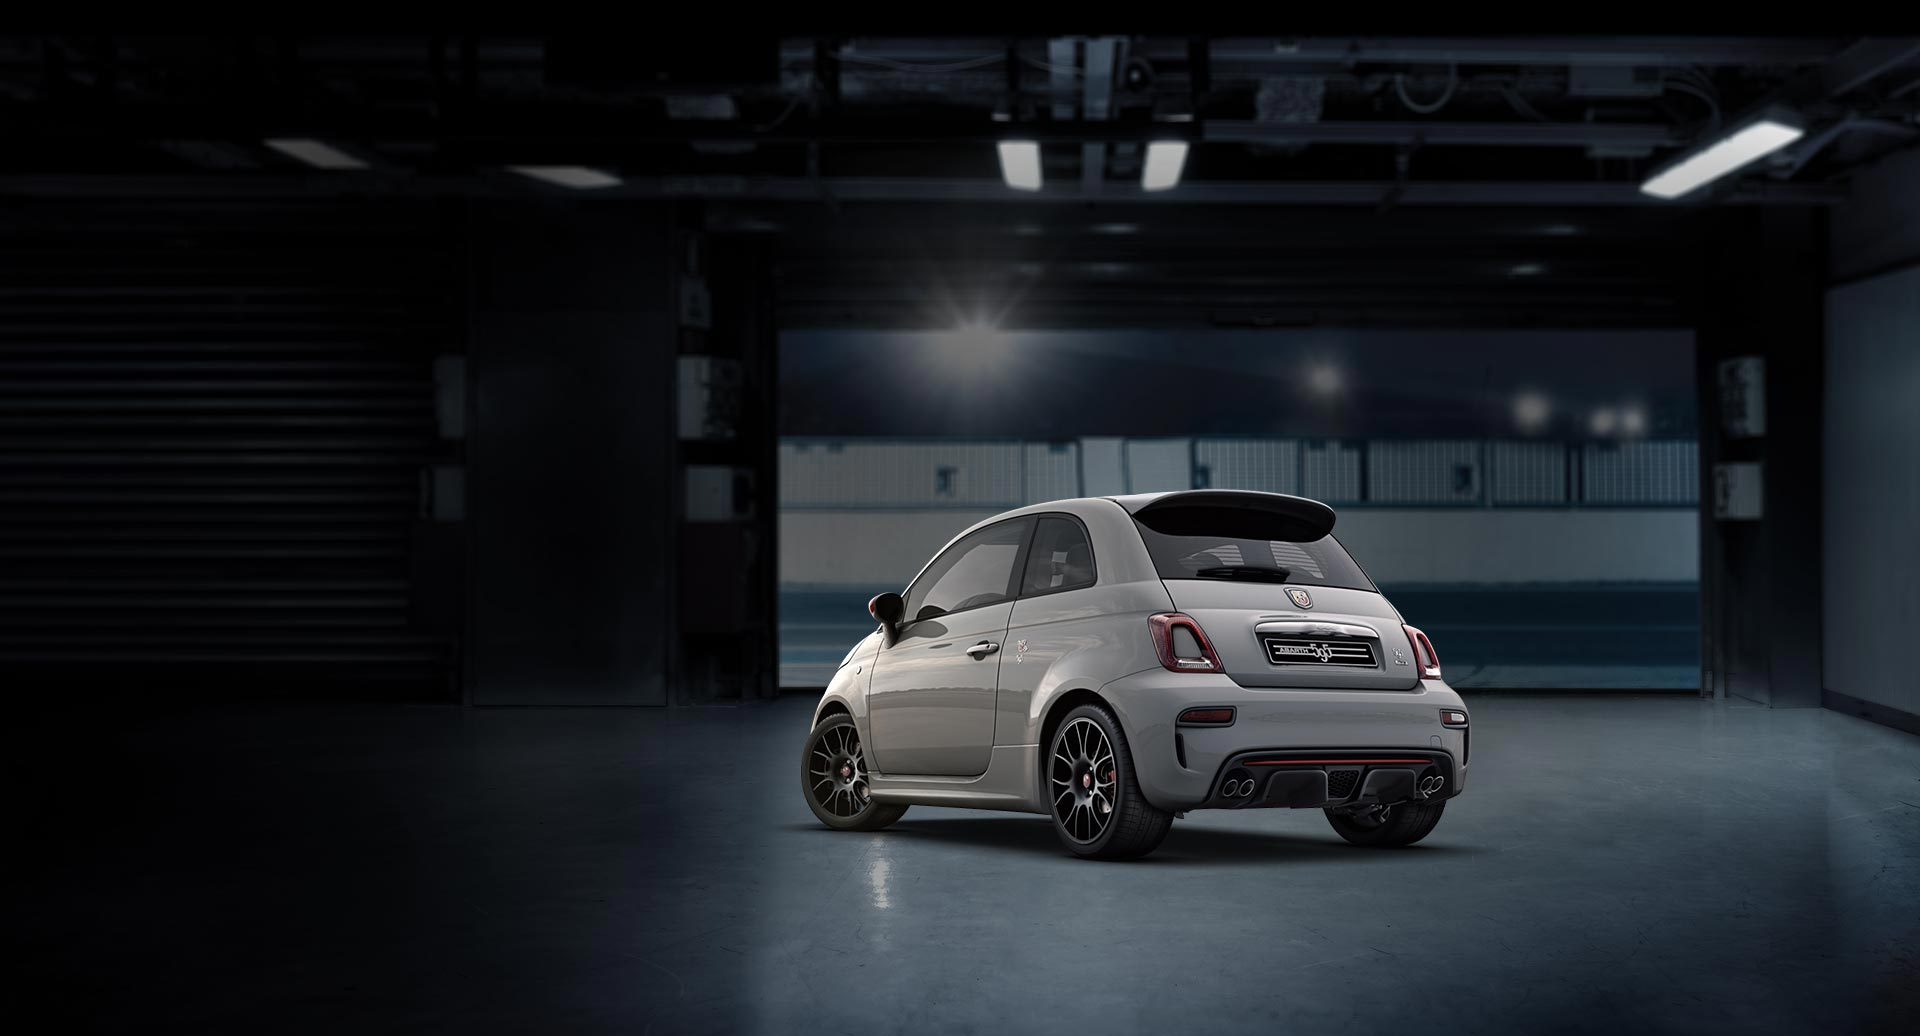 new abarth 595 pista connecting performance abarth. Black Bedroom Furniture Sets. Home Design Ideas